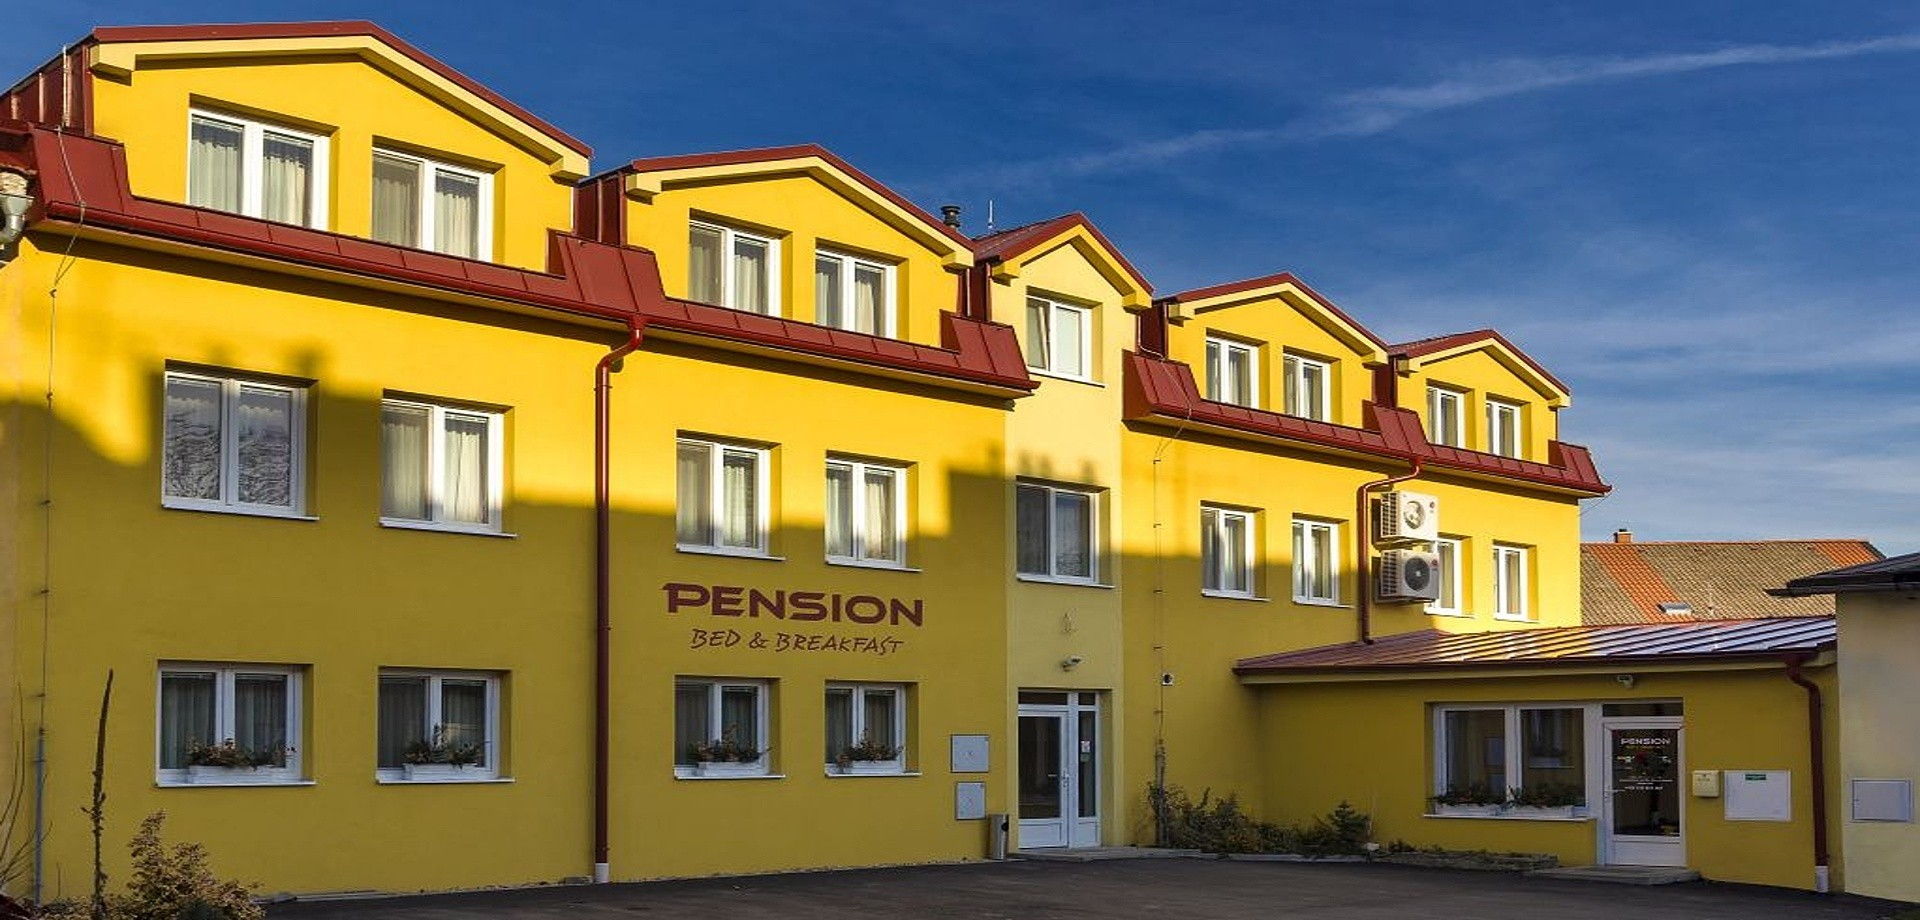 Pension Bed & Breakfast (1)